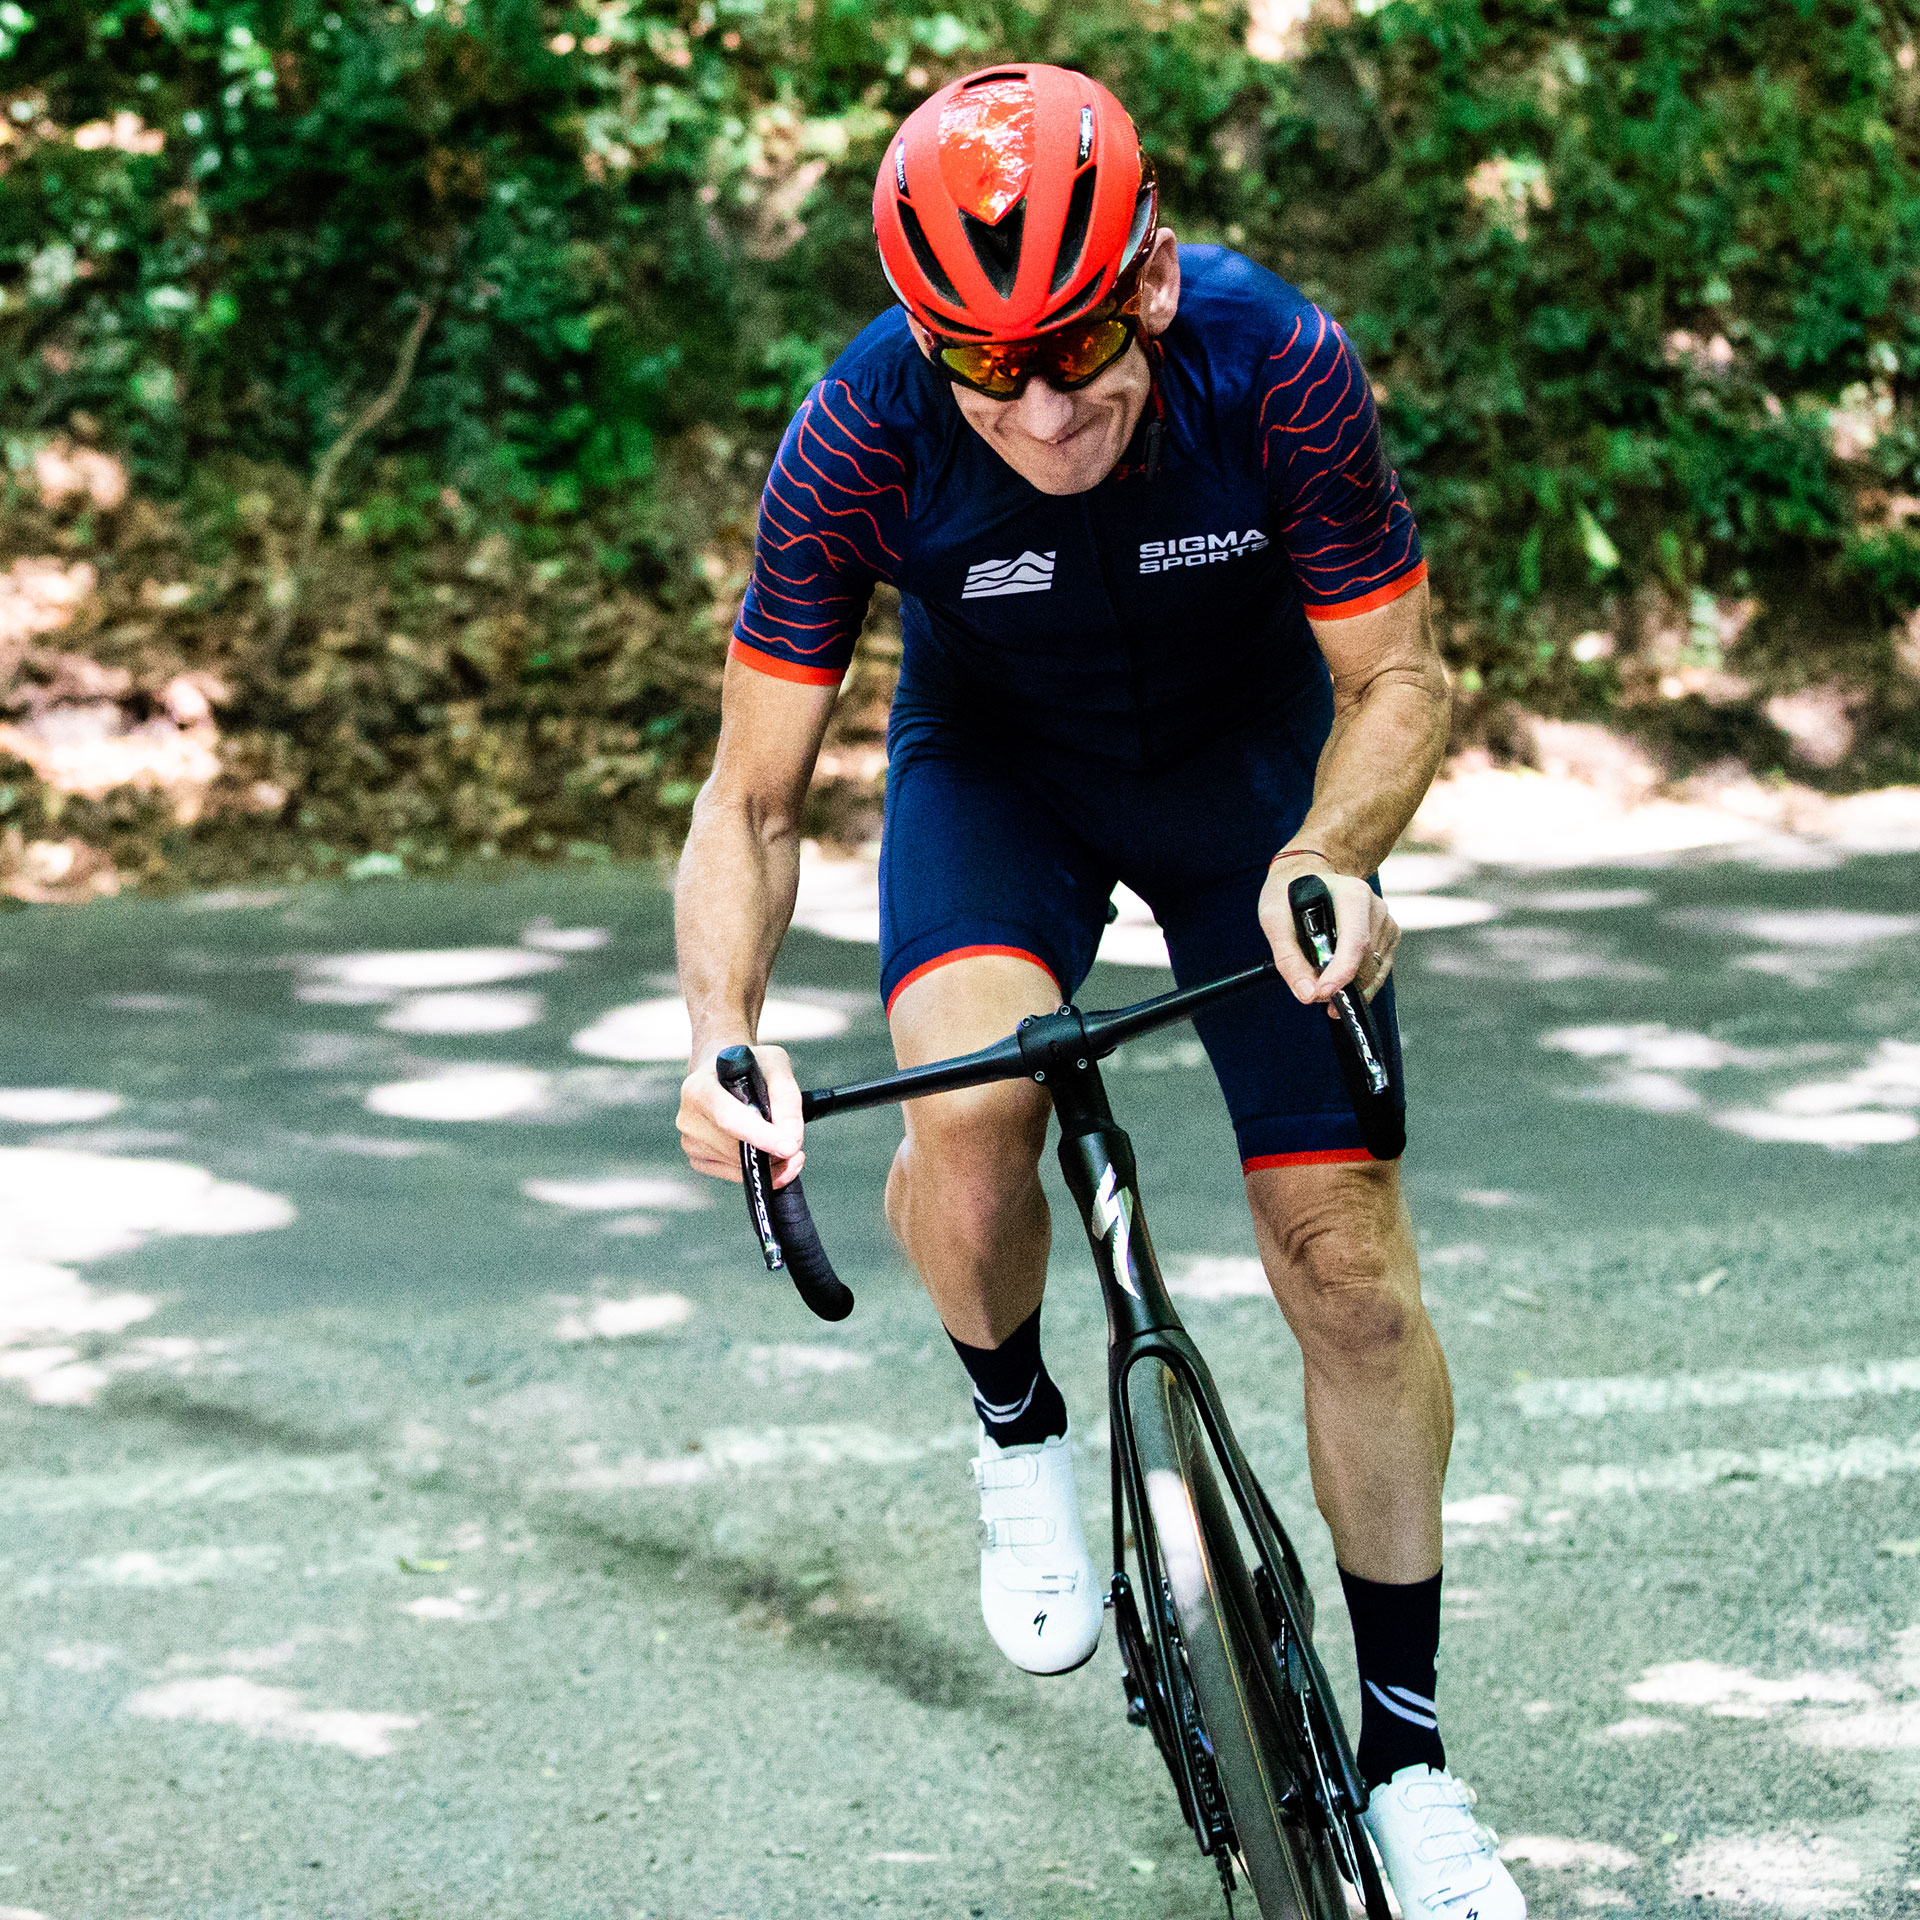 Matt Stephens Sprinting on the Specialized S-Works Venge Road Bike 2019